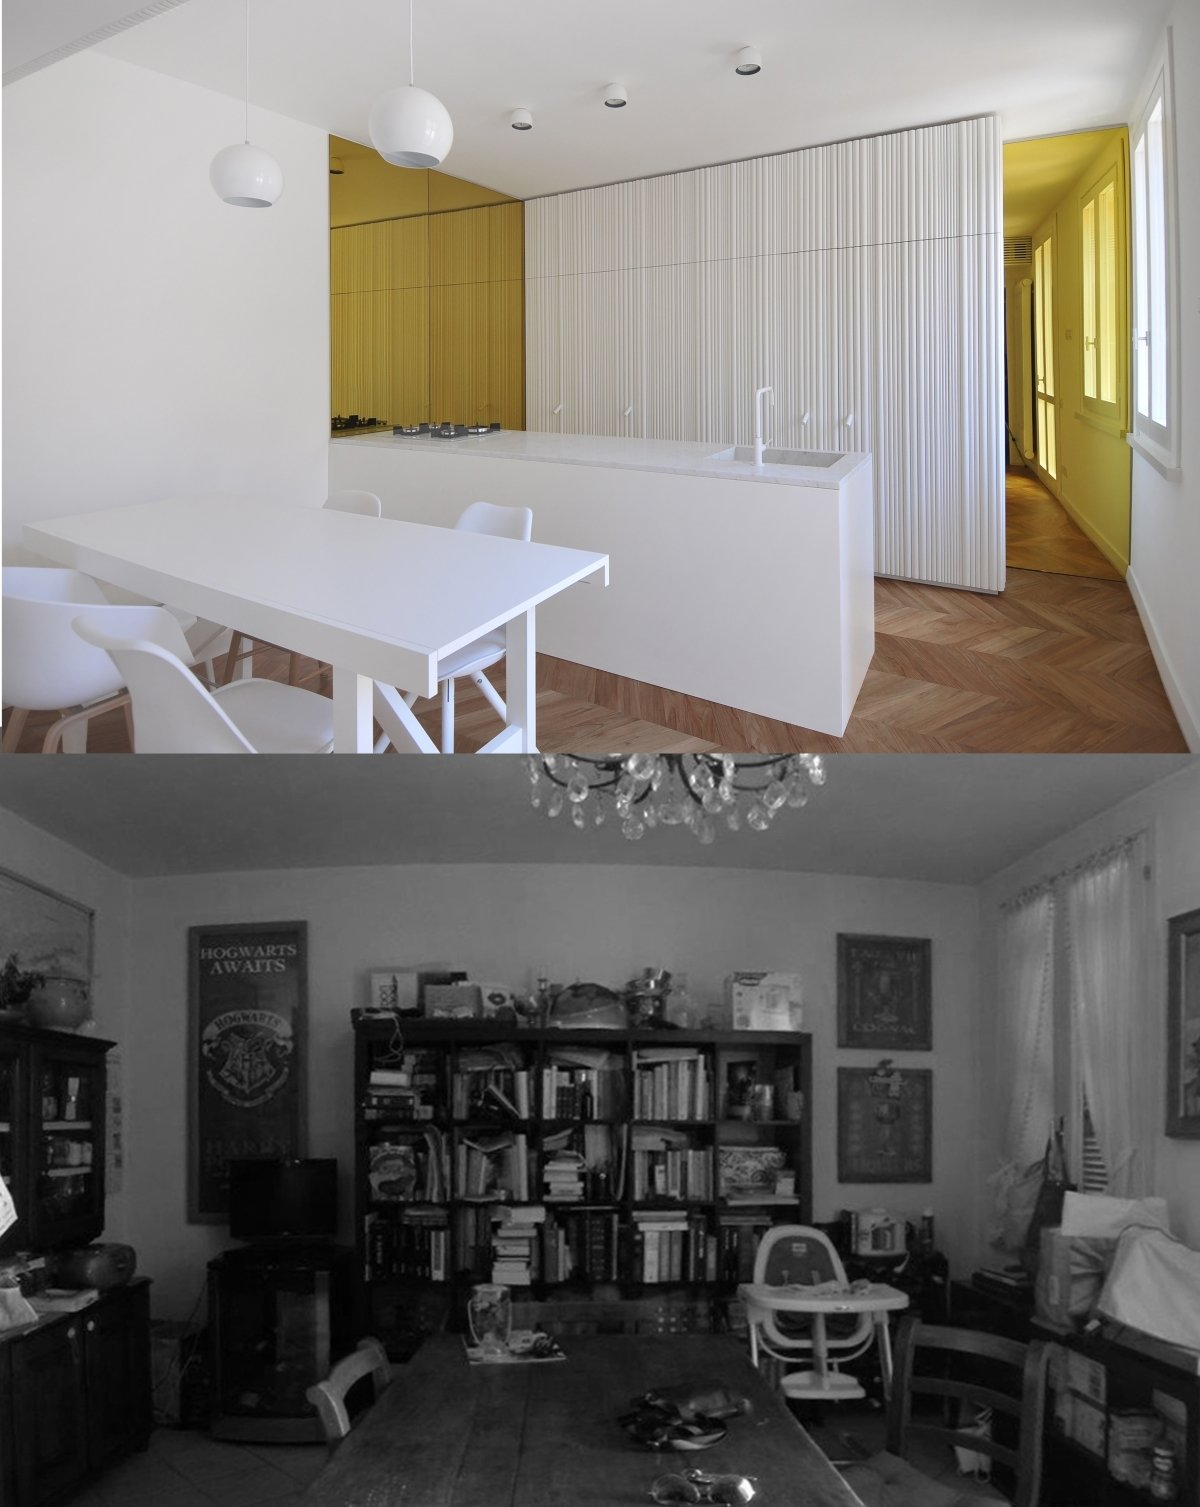 before and after photos of the kitchen  cdr by tissellistudioarchitetti